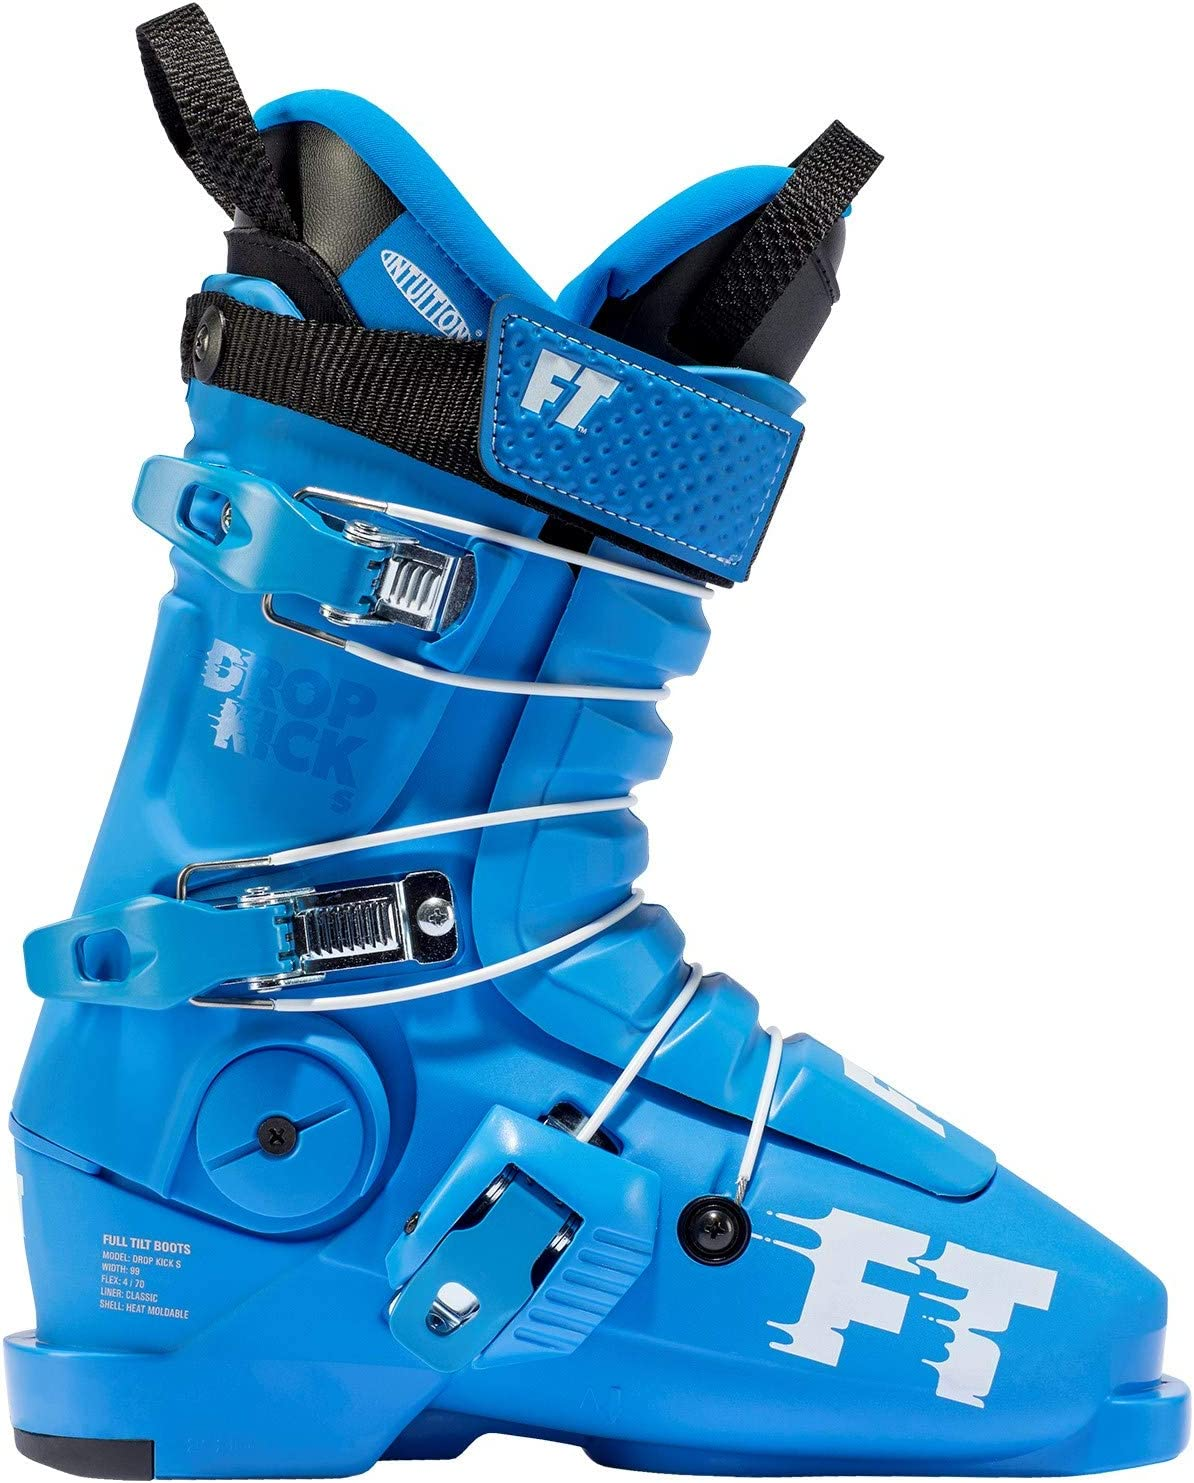 Best ski boots for beginner- Top 8 Pick of 2020-2021